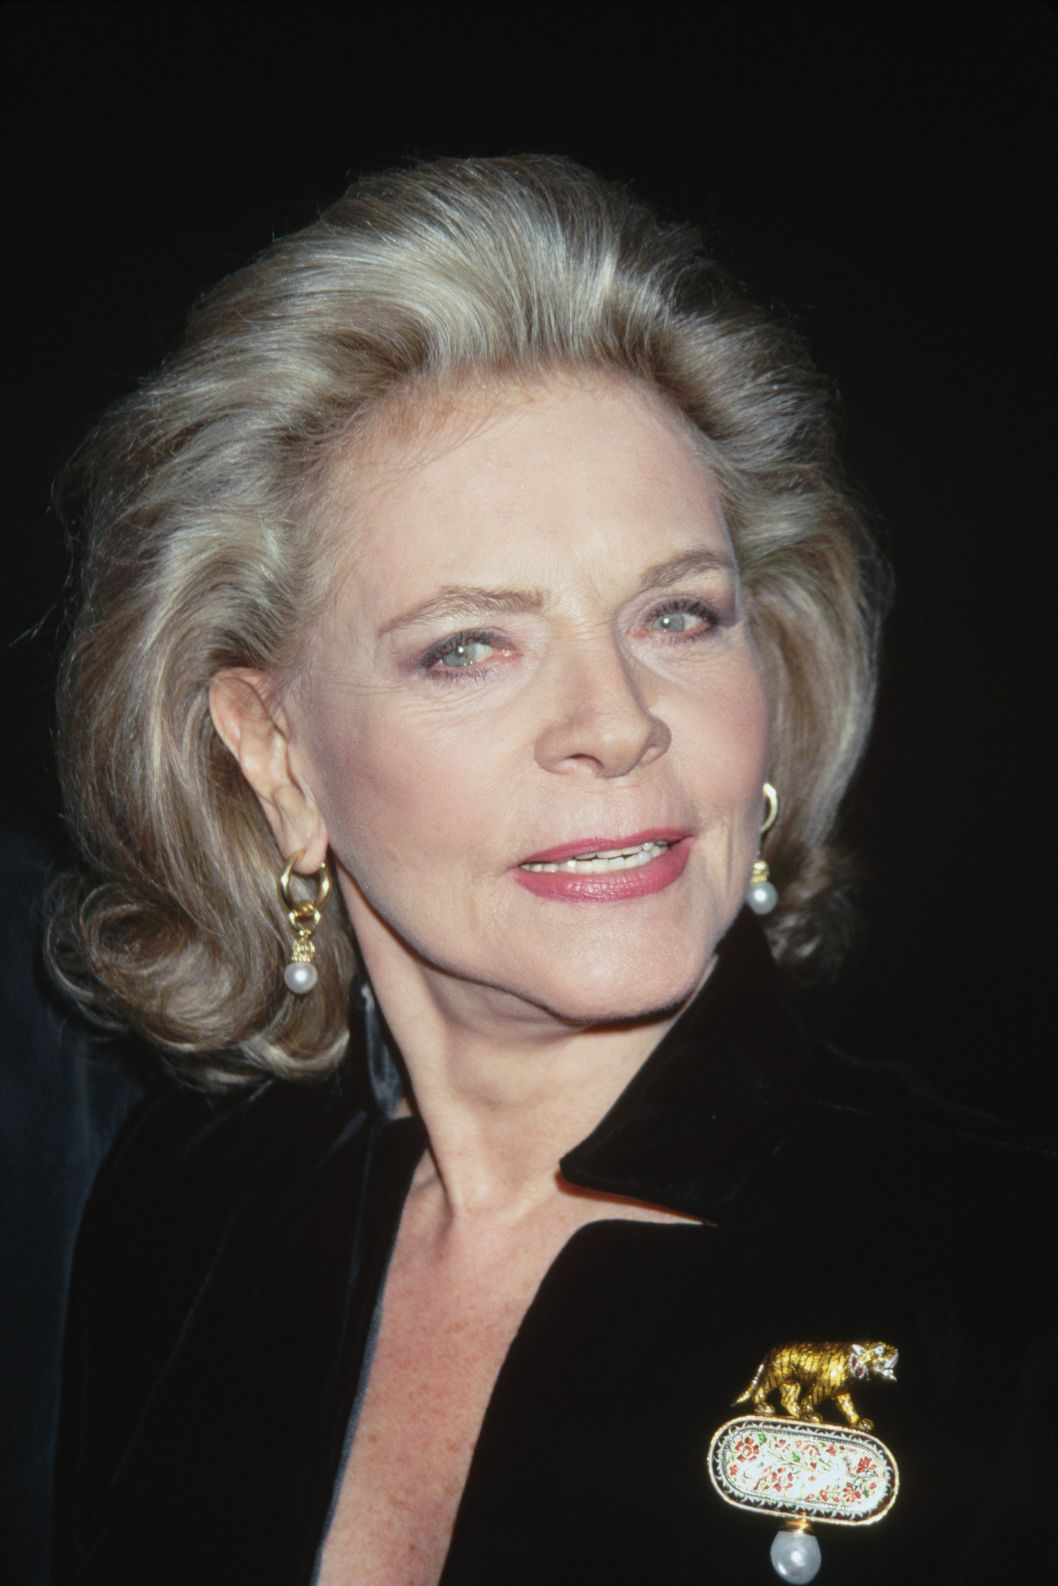 November 1996 --- Lauren Bacall attends the premiere of the motion picture The Mirror Has Two Faces at the Ziegfeld Theater in New York. --- Image by ? Mitchell Gerber/Corbis